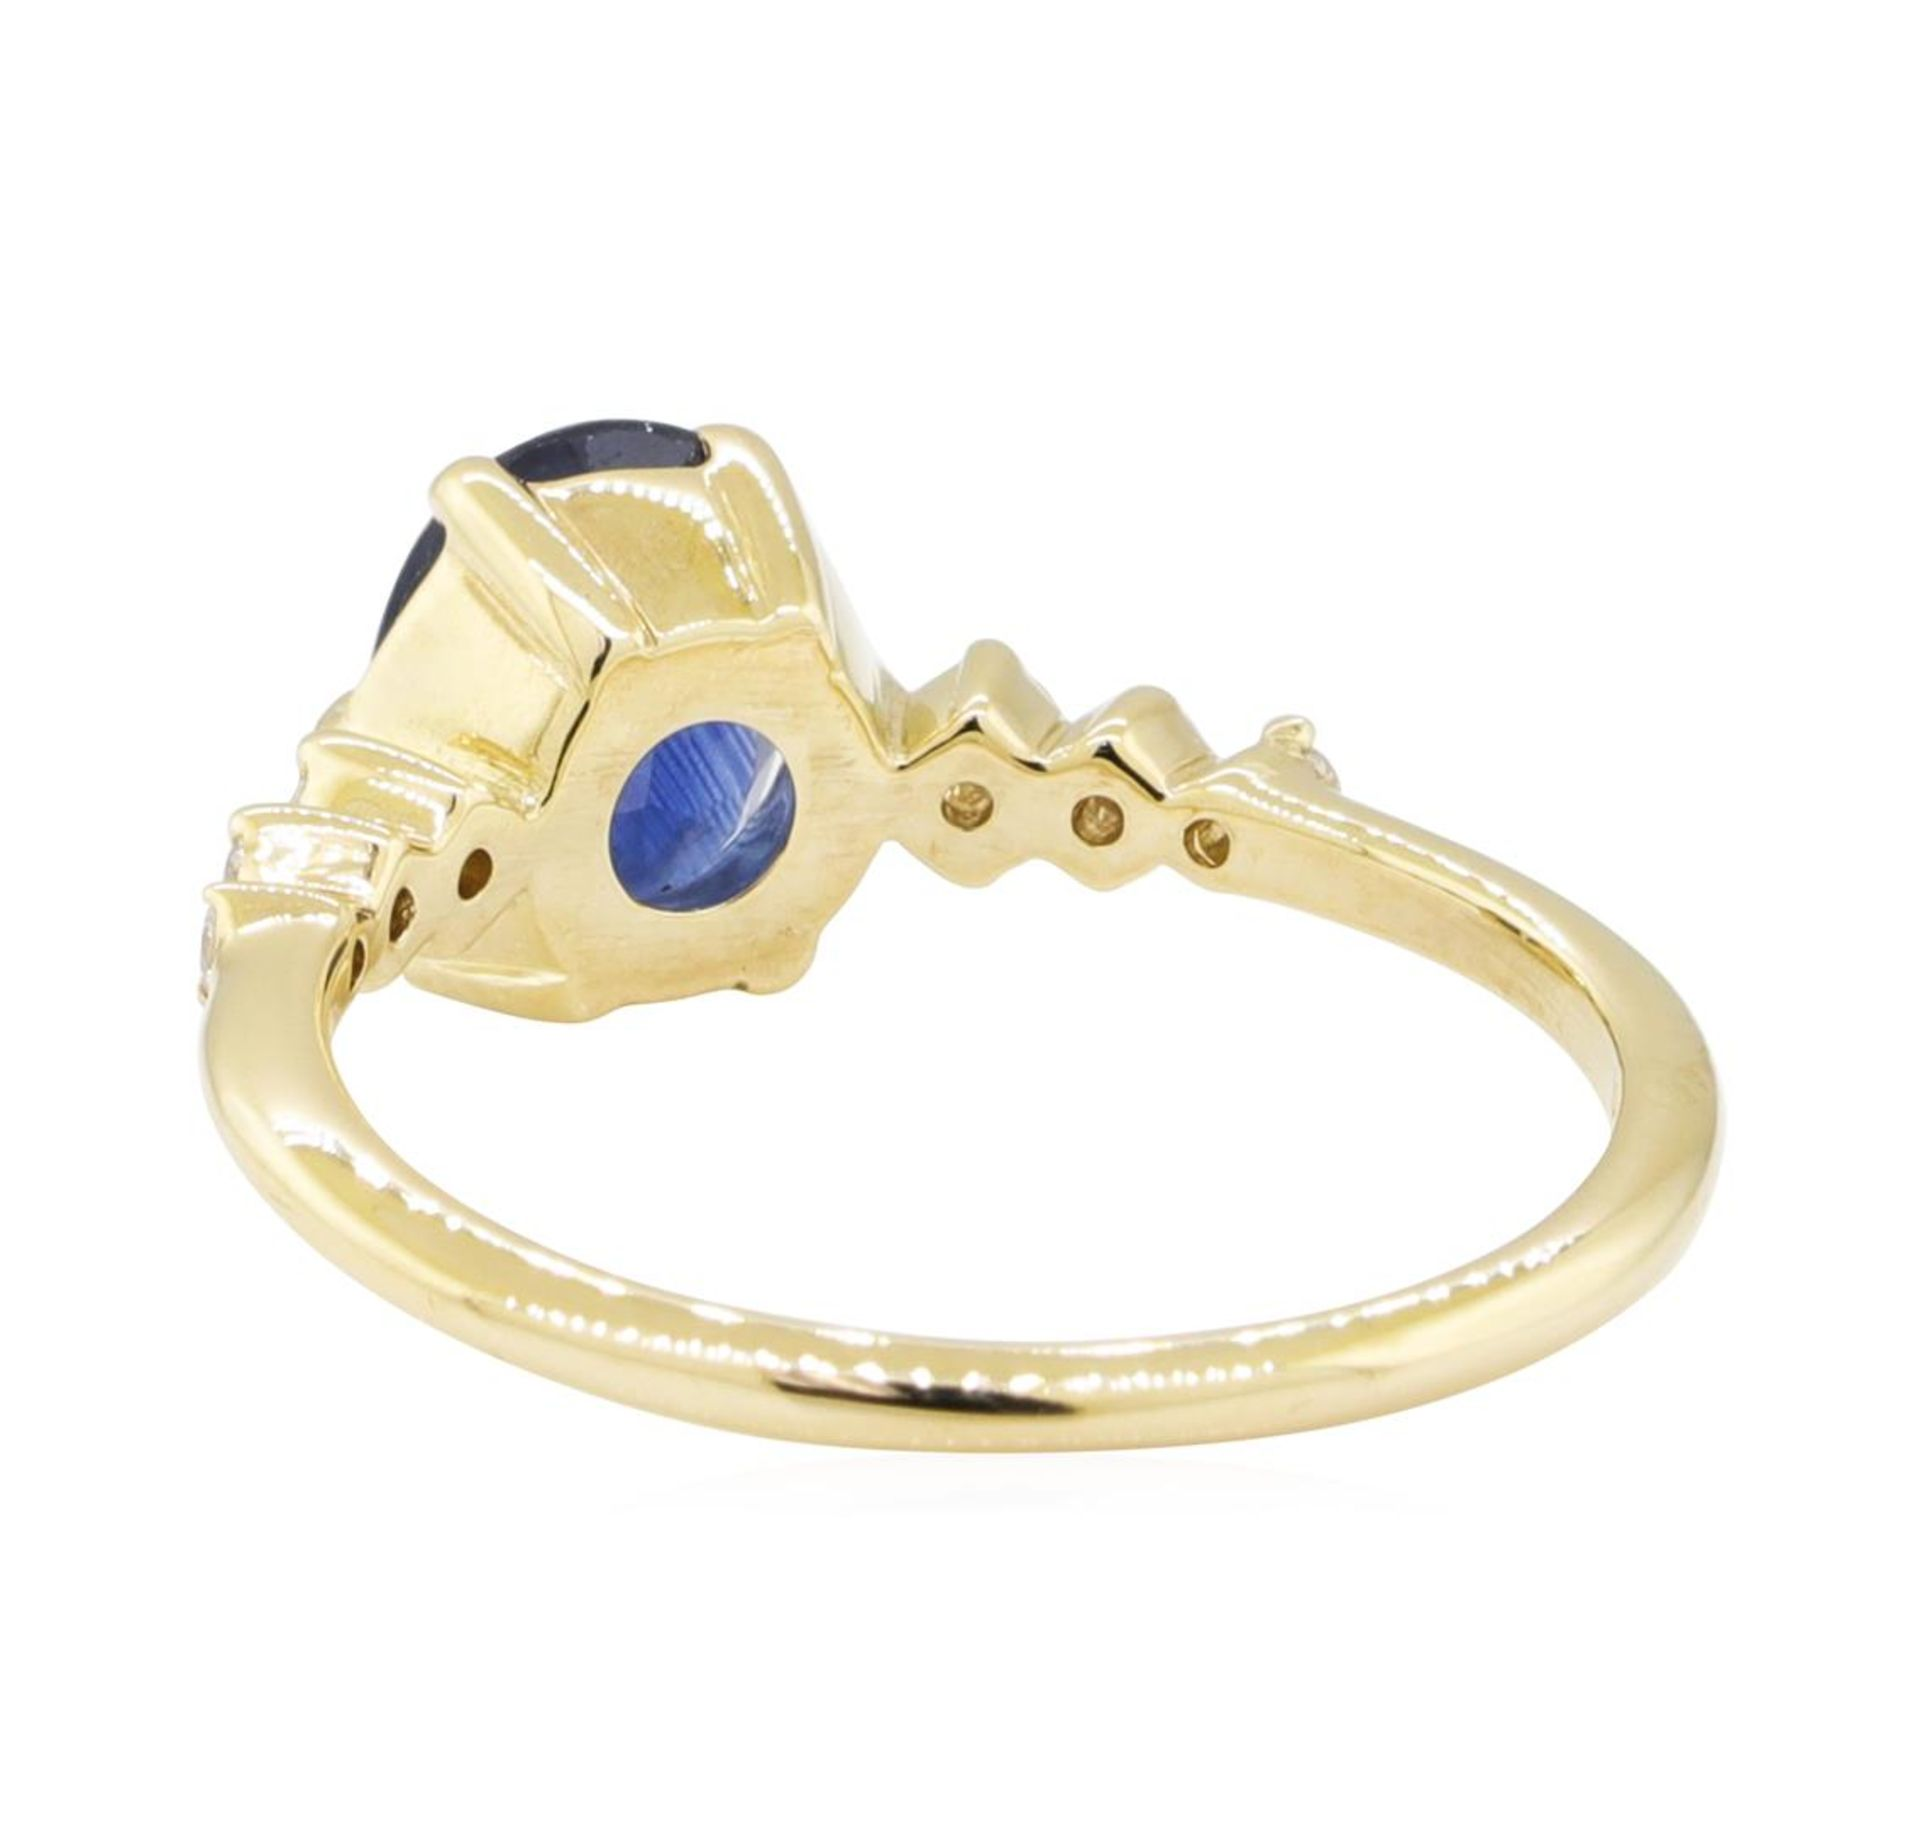 1.43ctw Sapphire and Diamond Ring - 14KT Yellow Gold - Image 3 of 4